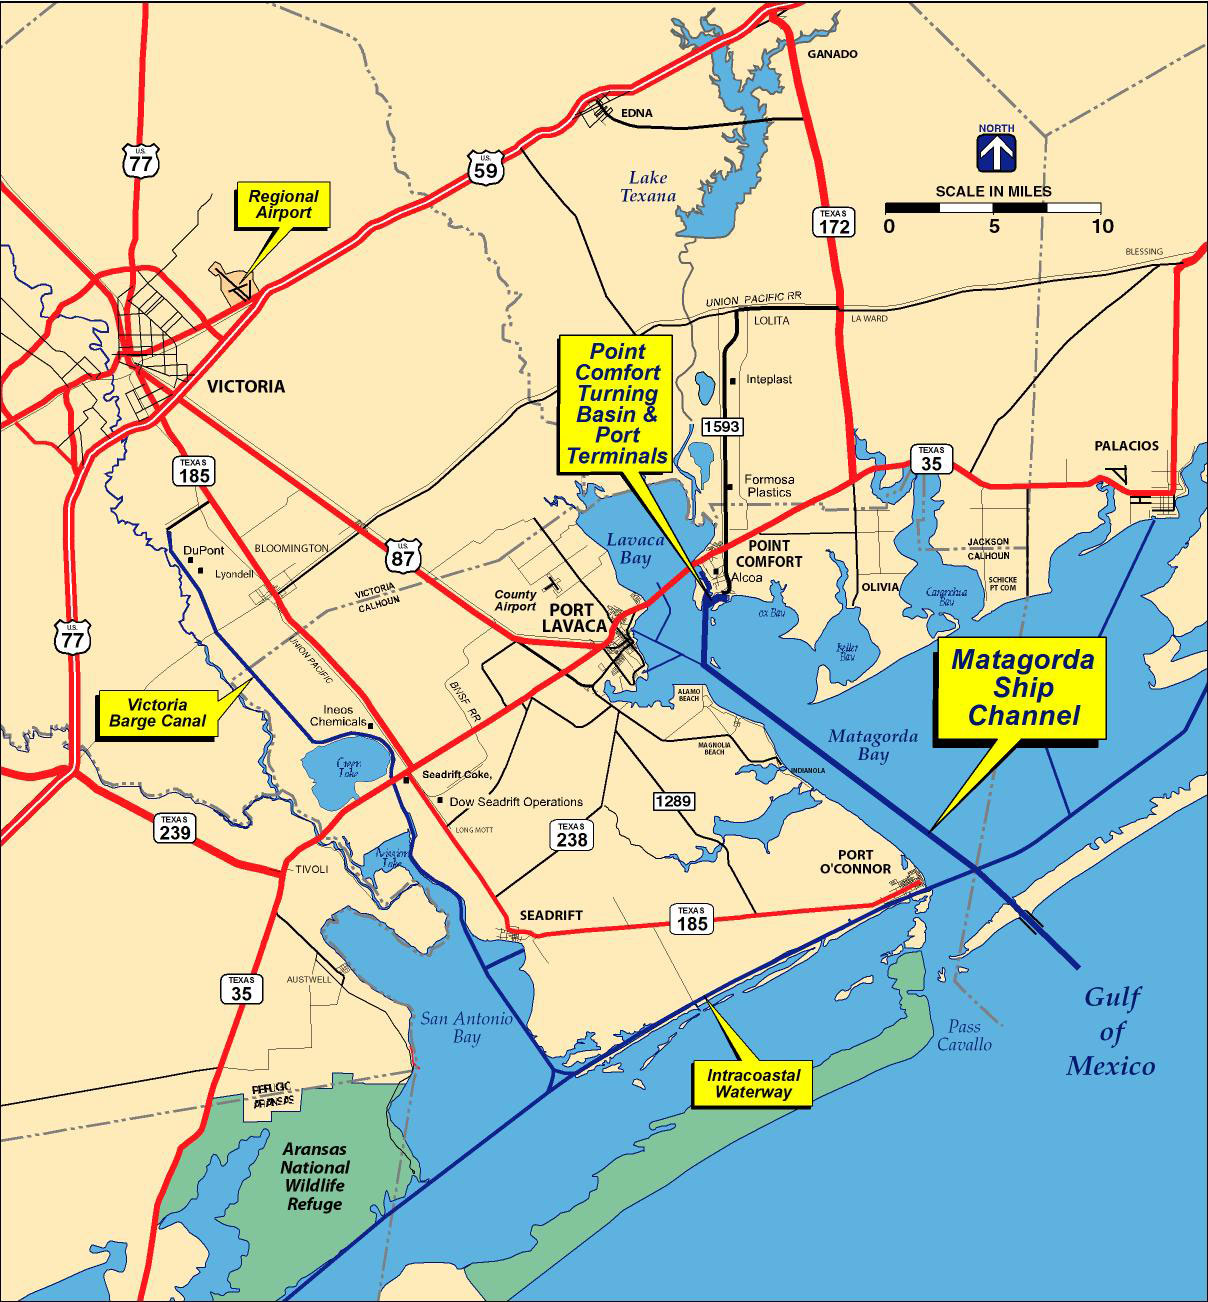 Matagorda Ship Channel map